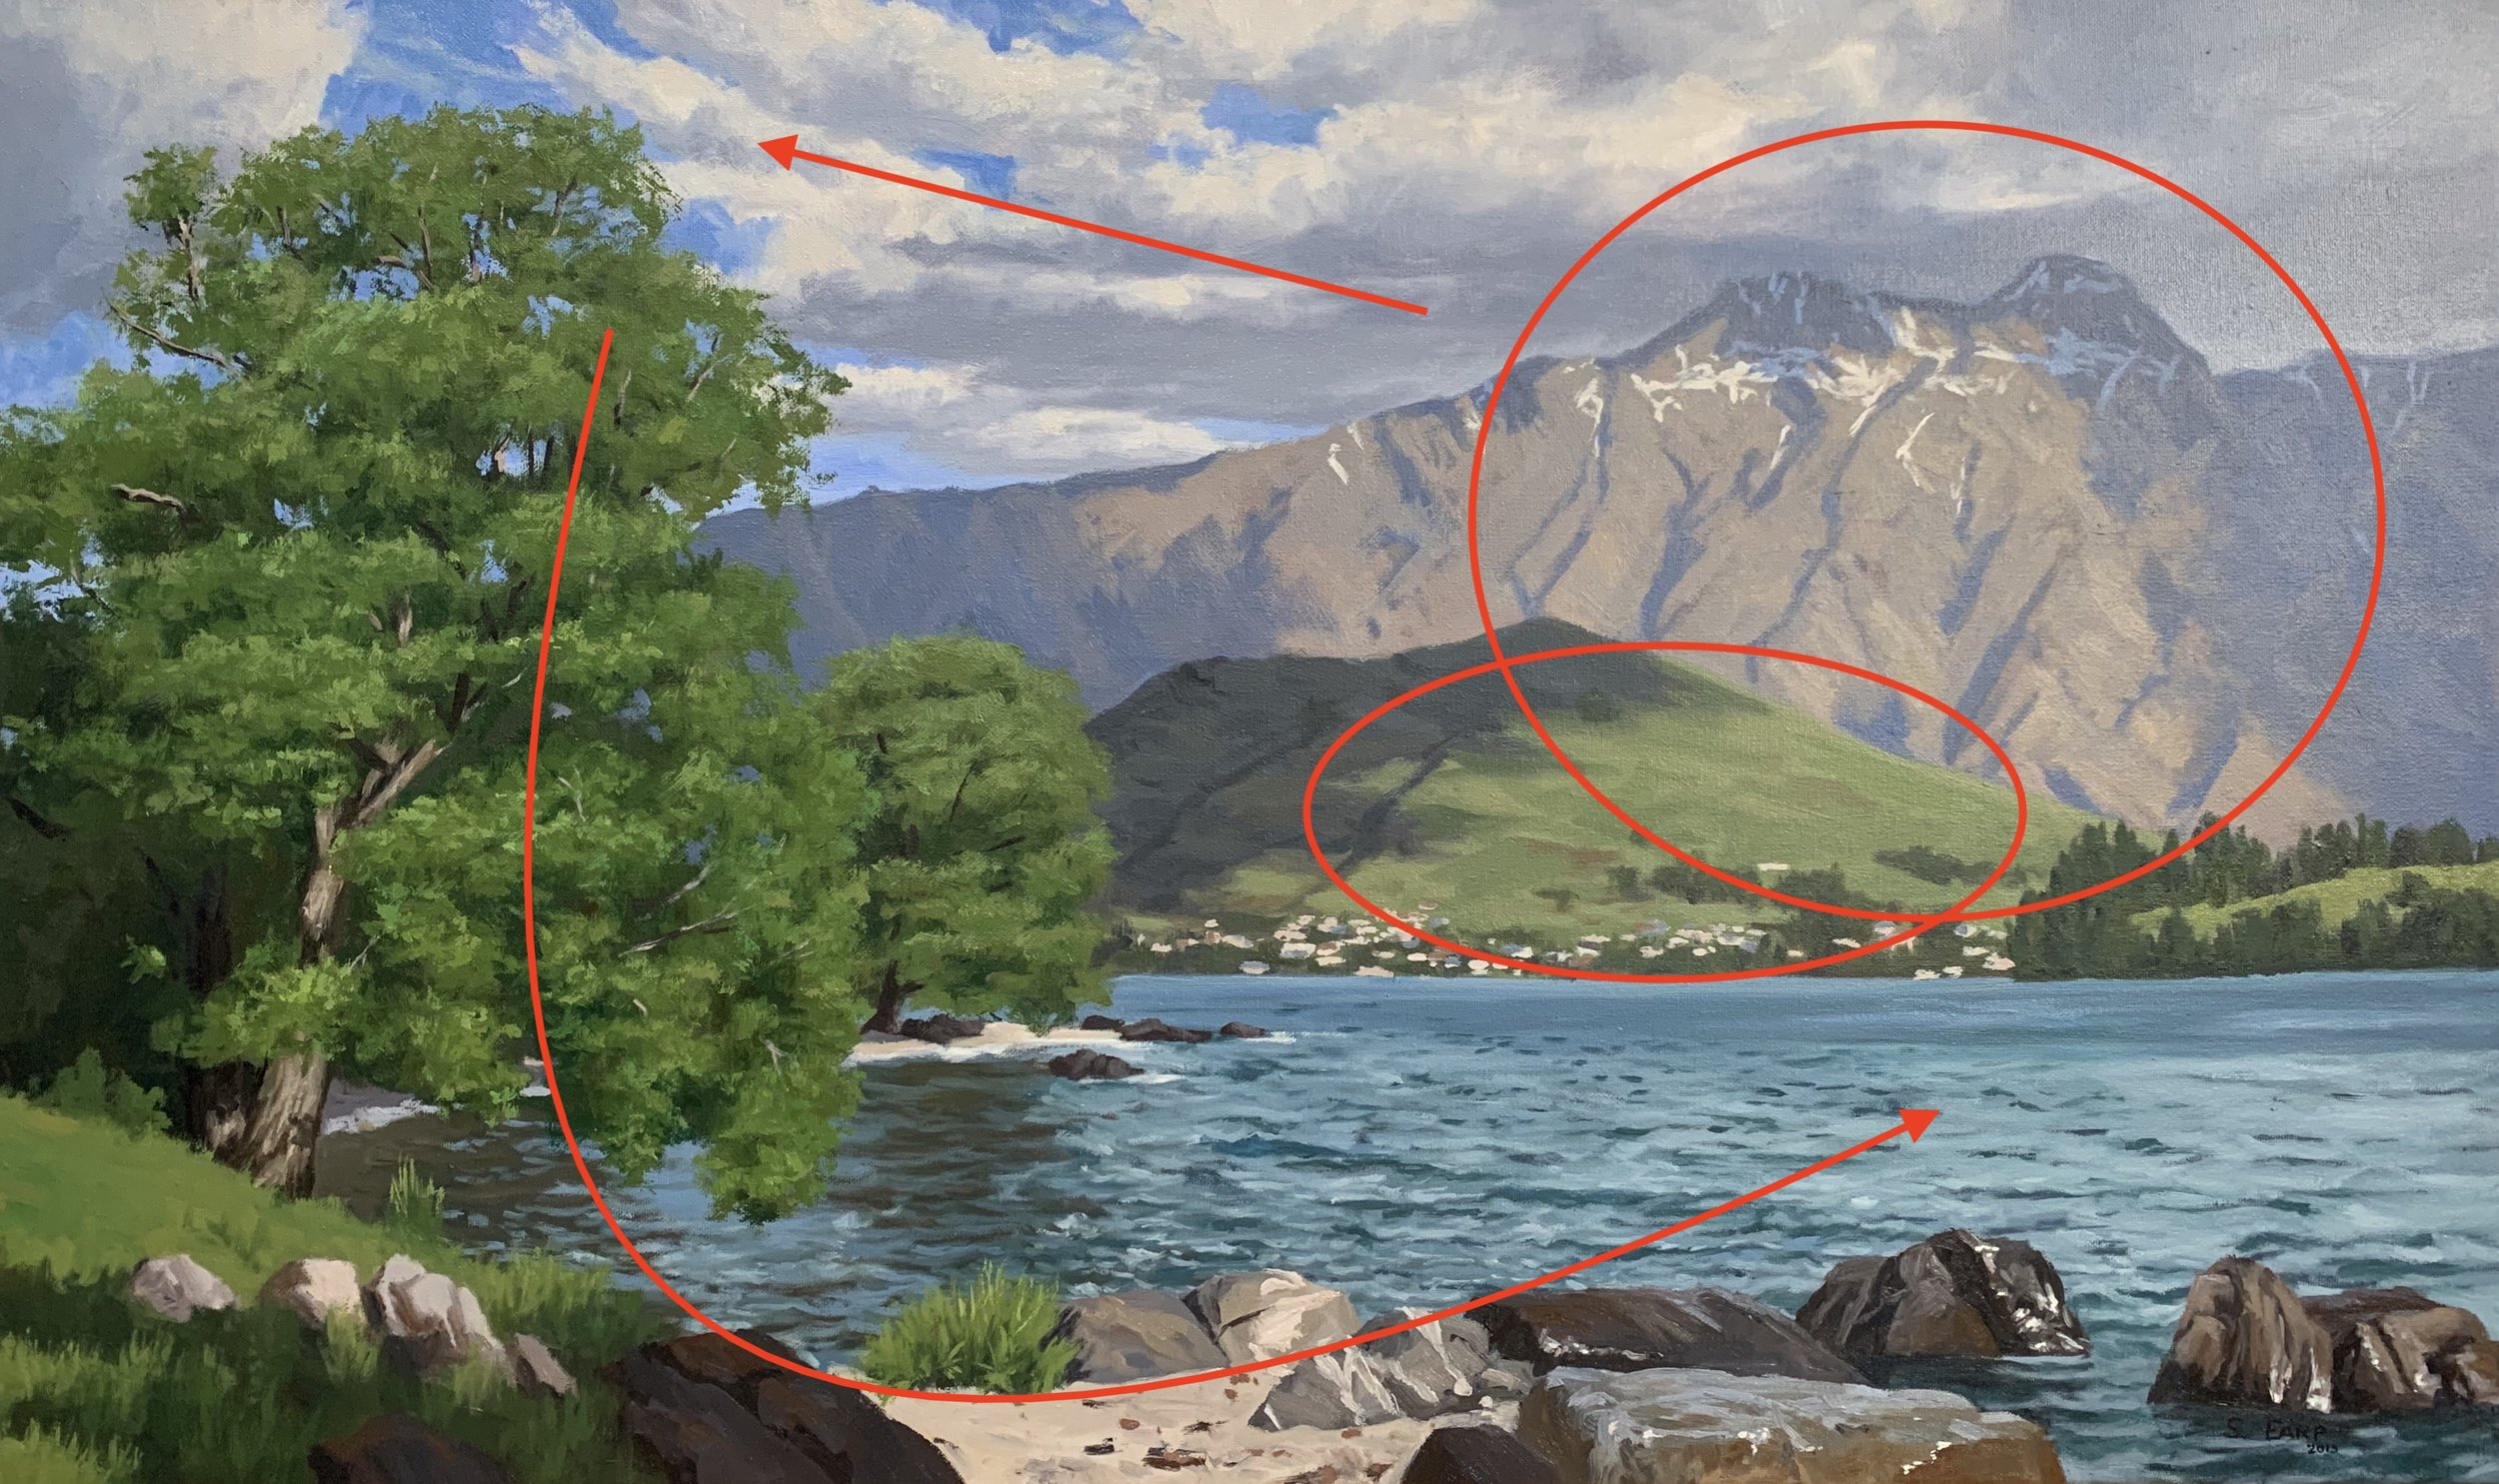 Lake Wakatipu New Zealand - Samuel Earp landscape artist - composition 3.jpg